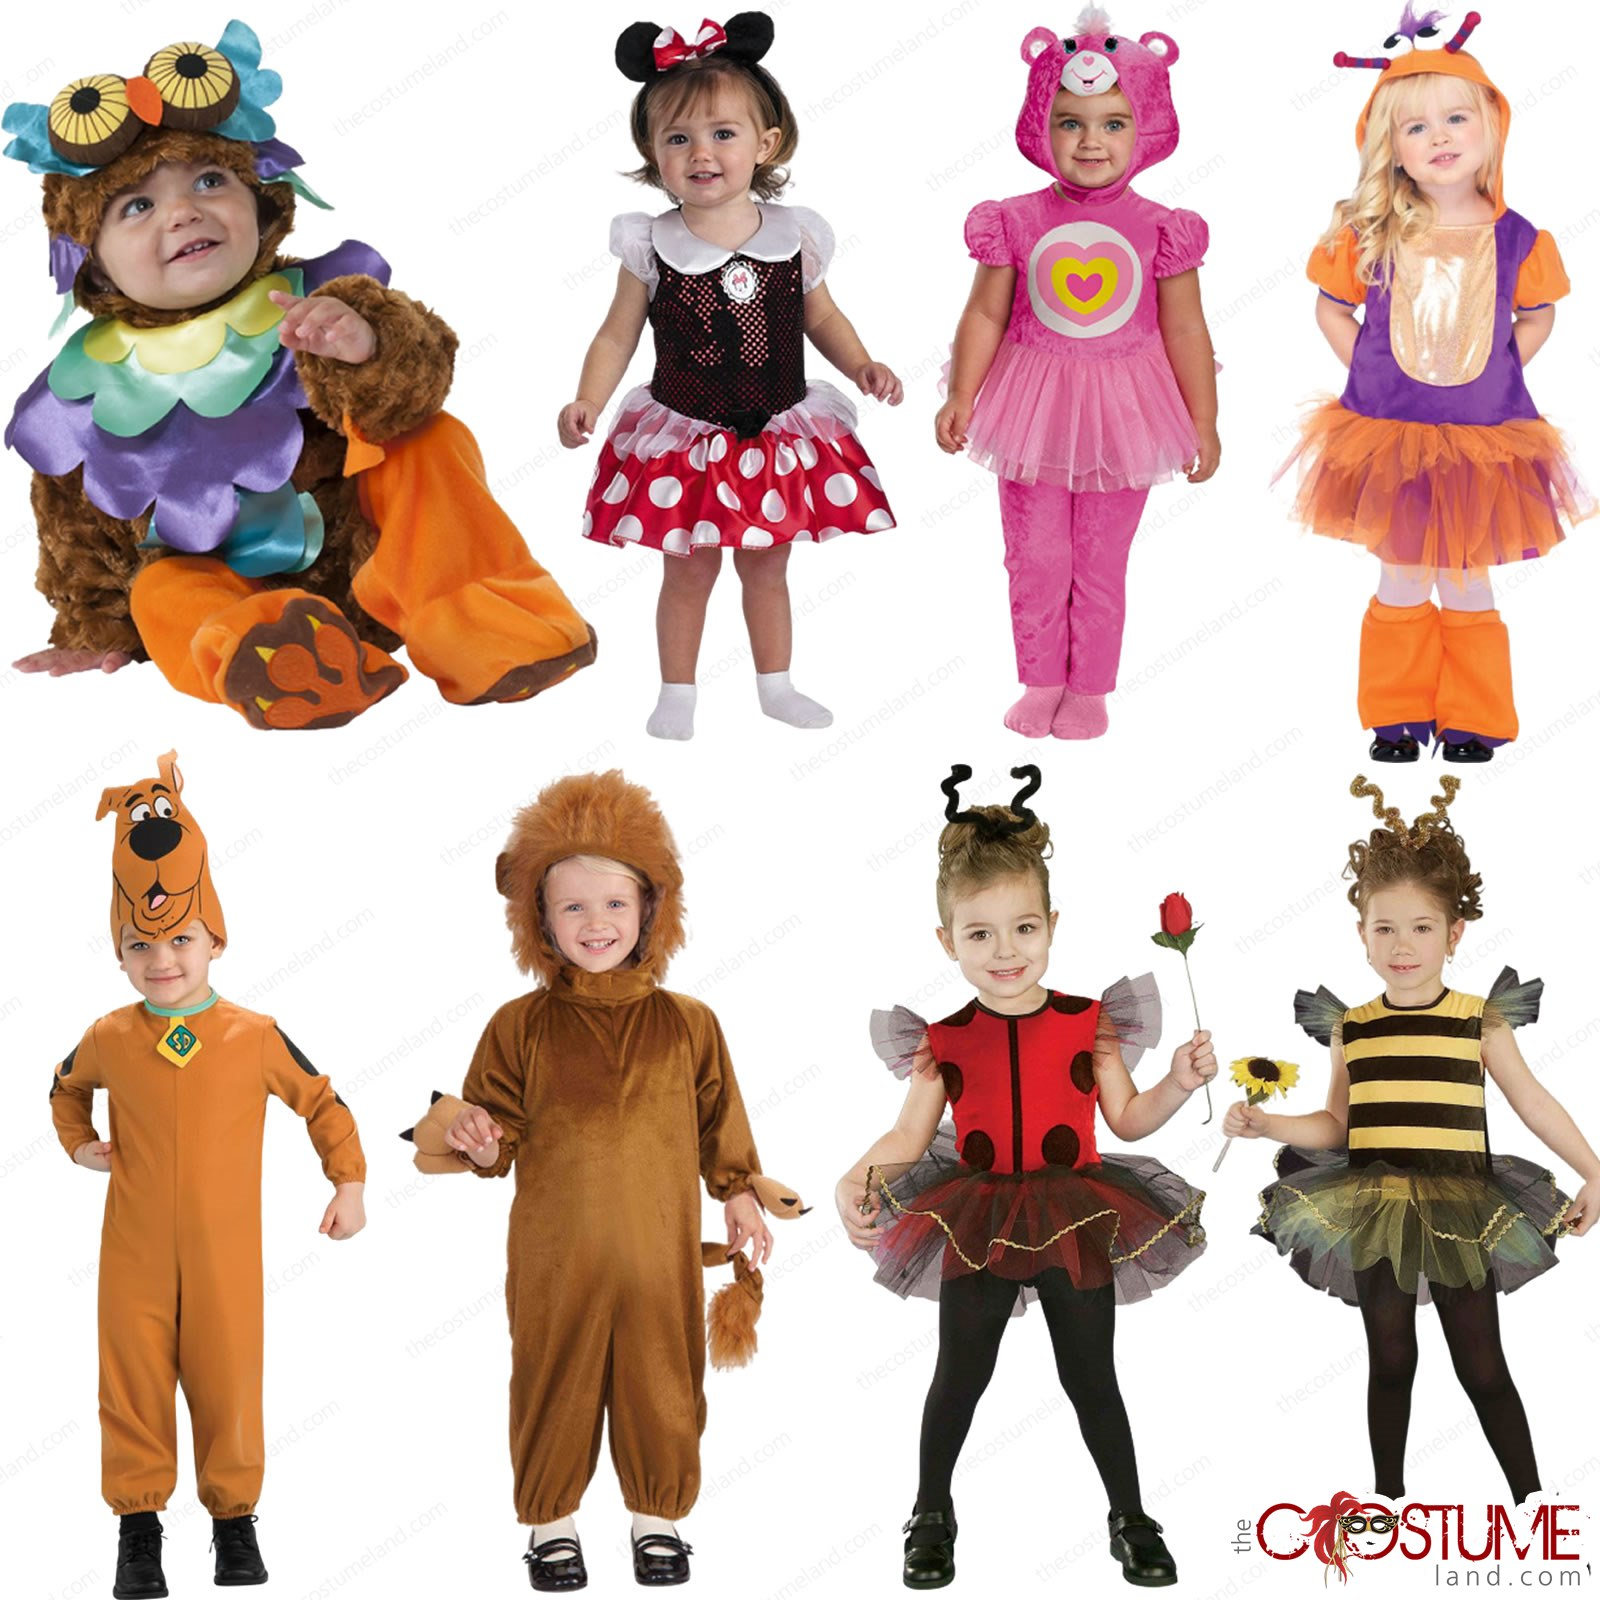 Animals Cute Baby Toddler Costumes Scooby Dress Minnie Mouse Fancy Party Outfit Ebay